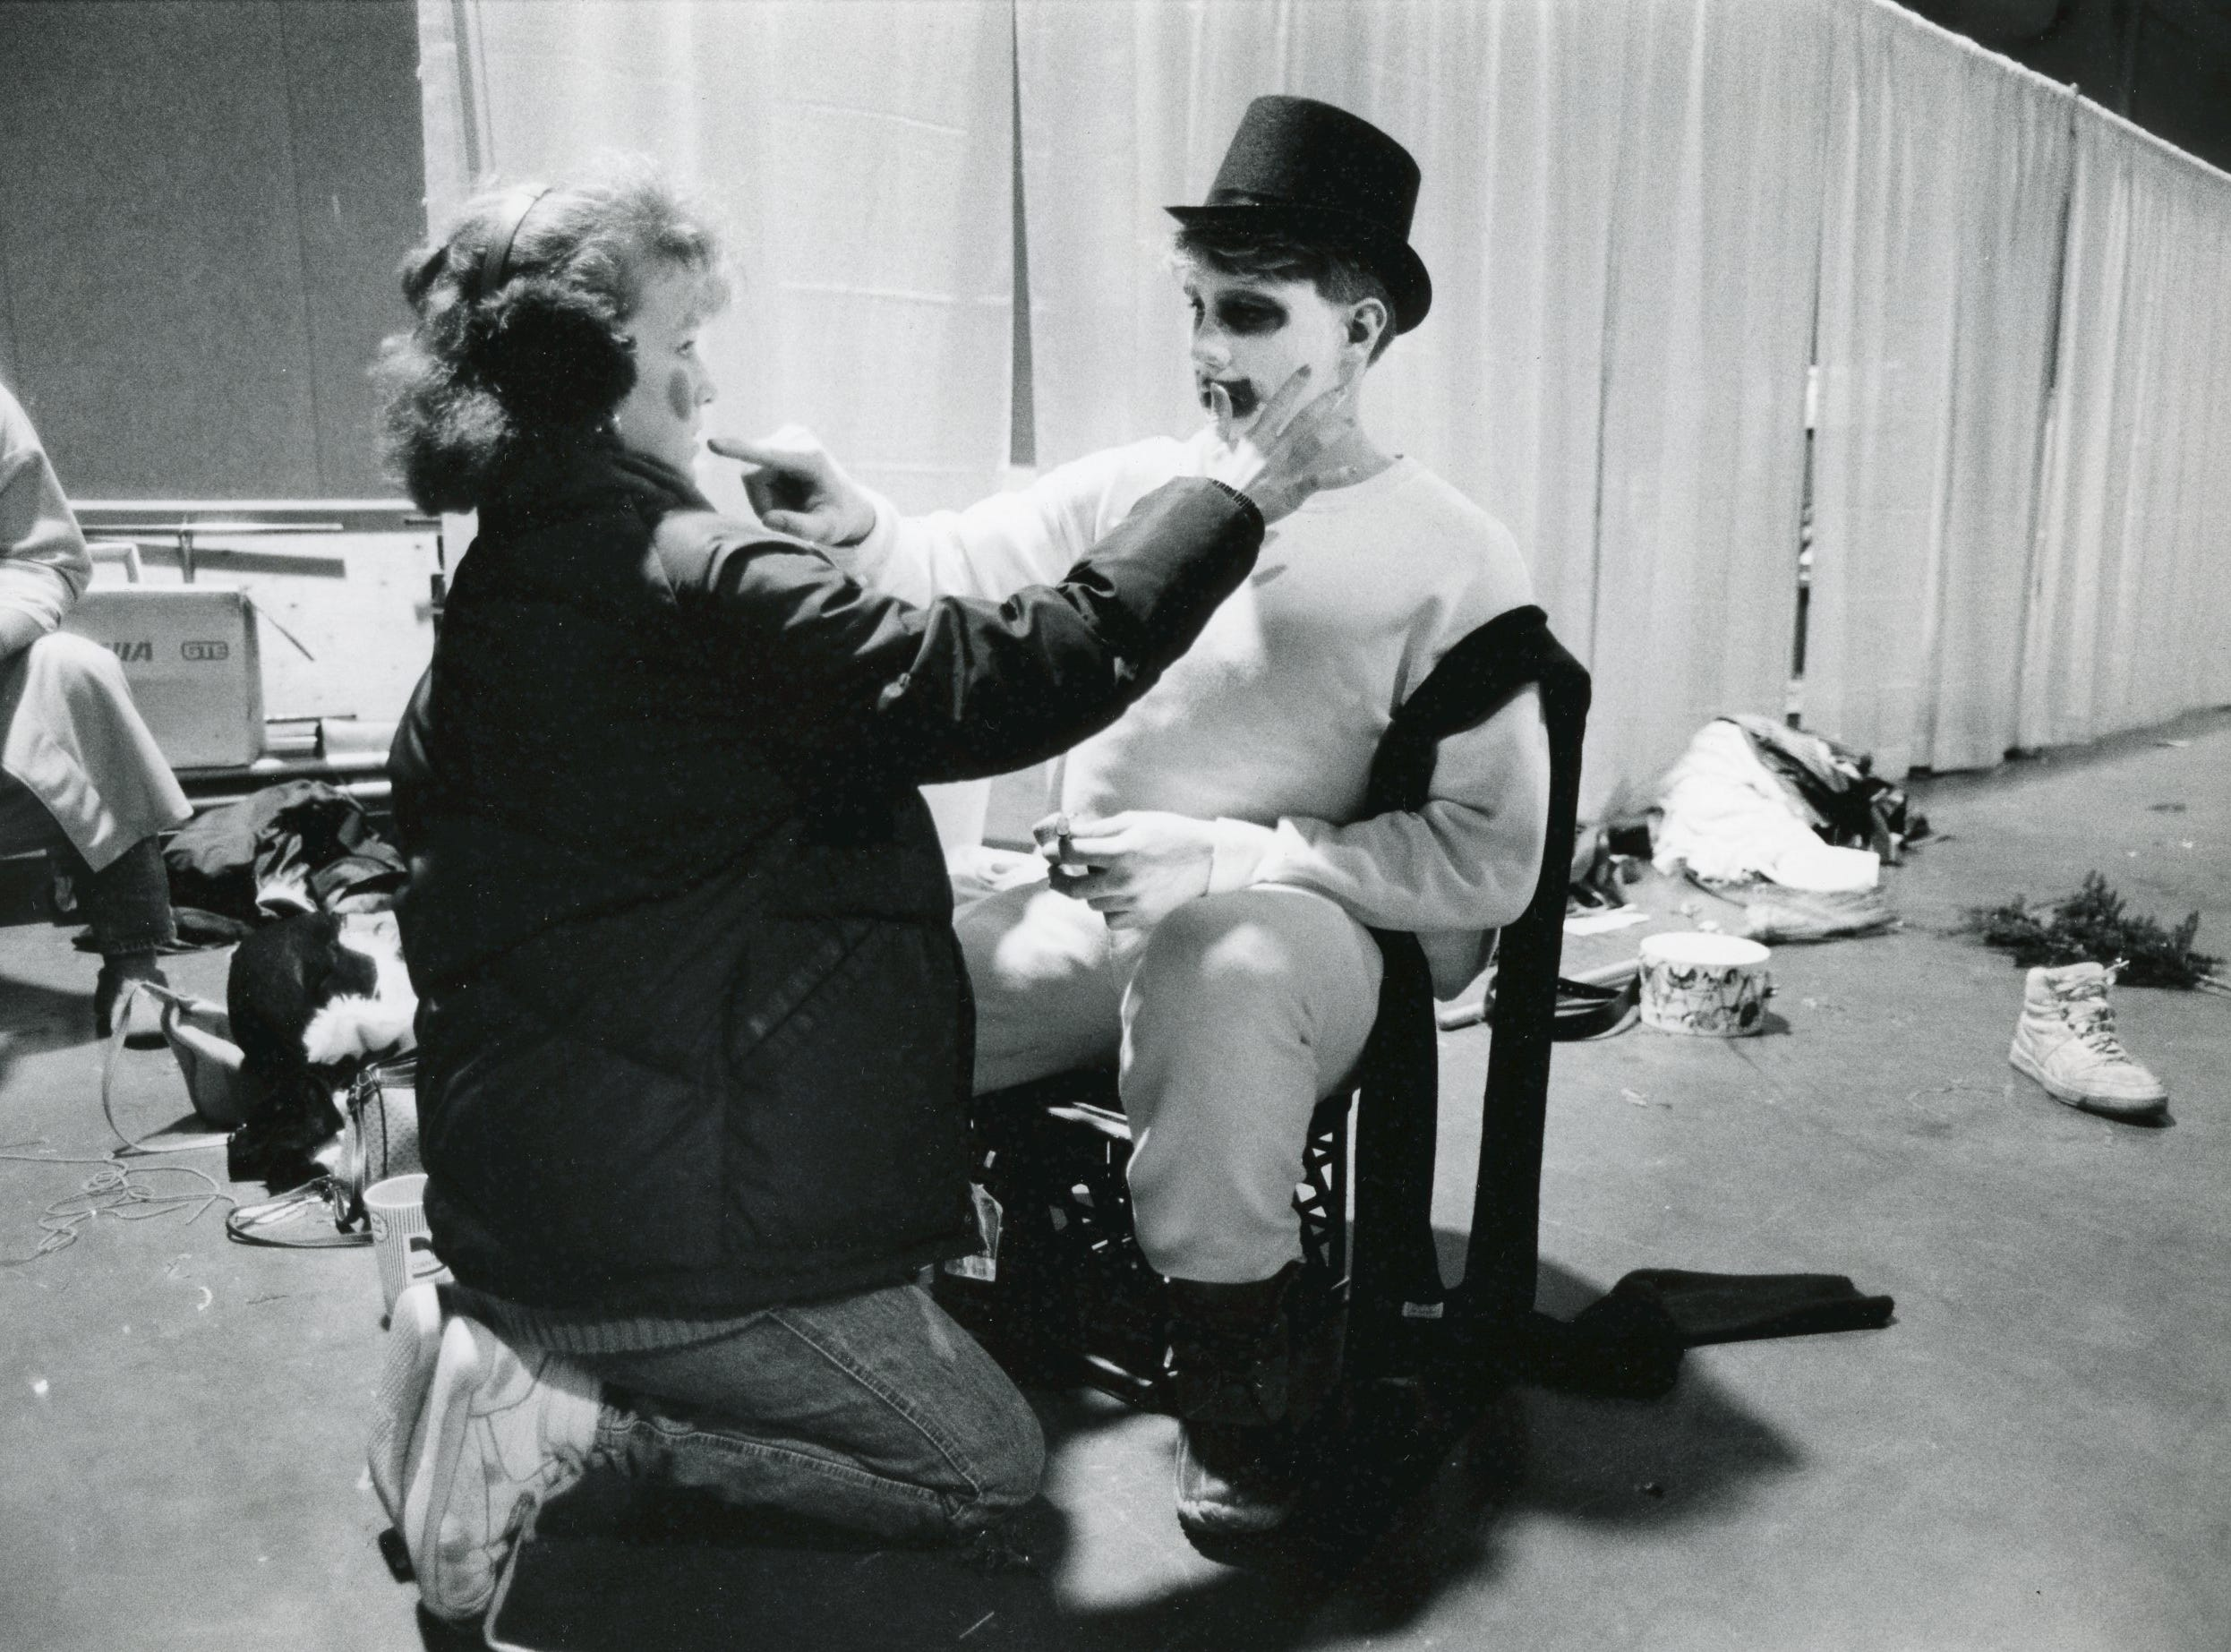 Bearden High drama students Marsha Jones and Gene Haun, assist one another with make up for a skit at Fantasy of Trees, November 1987.